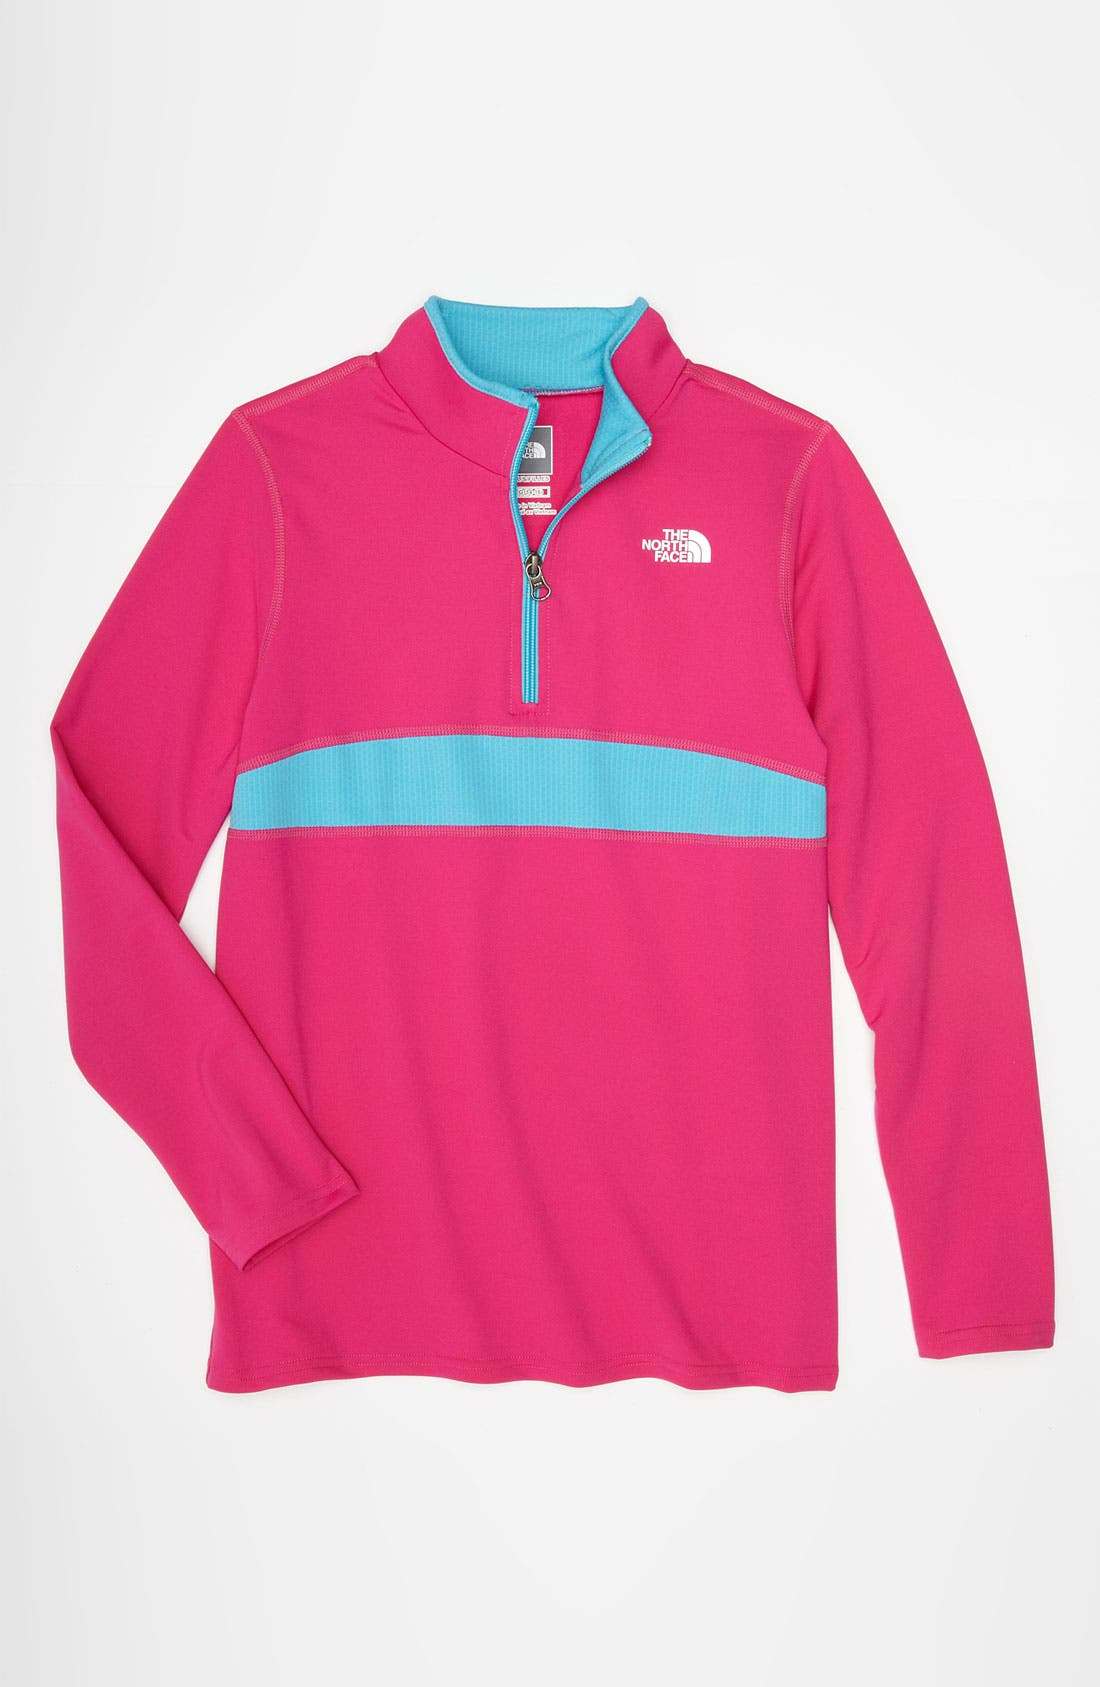 Alternate Image 1 Selected - The North Face 'Sikayda' Pullover Jacket (Little Girls)